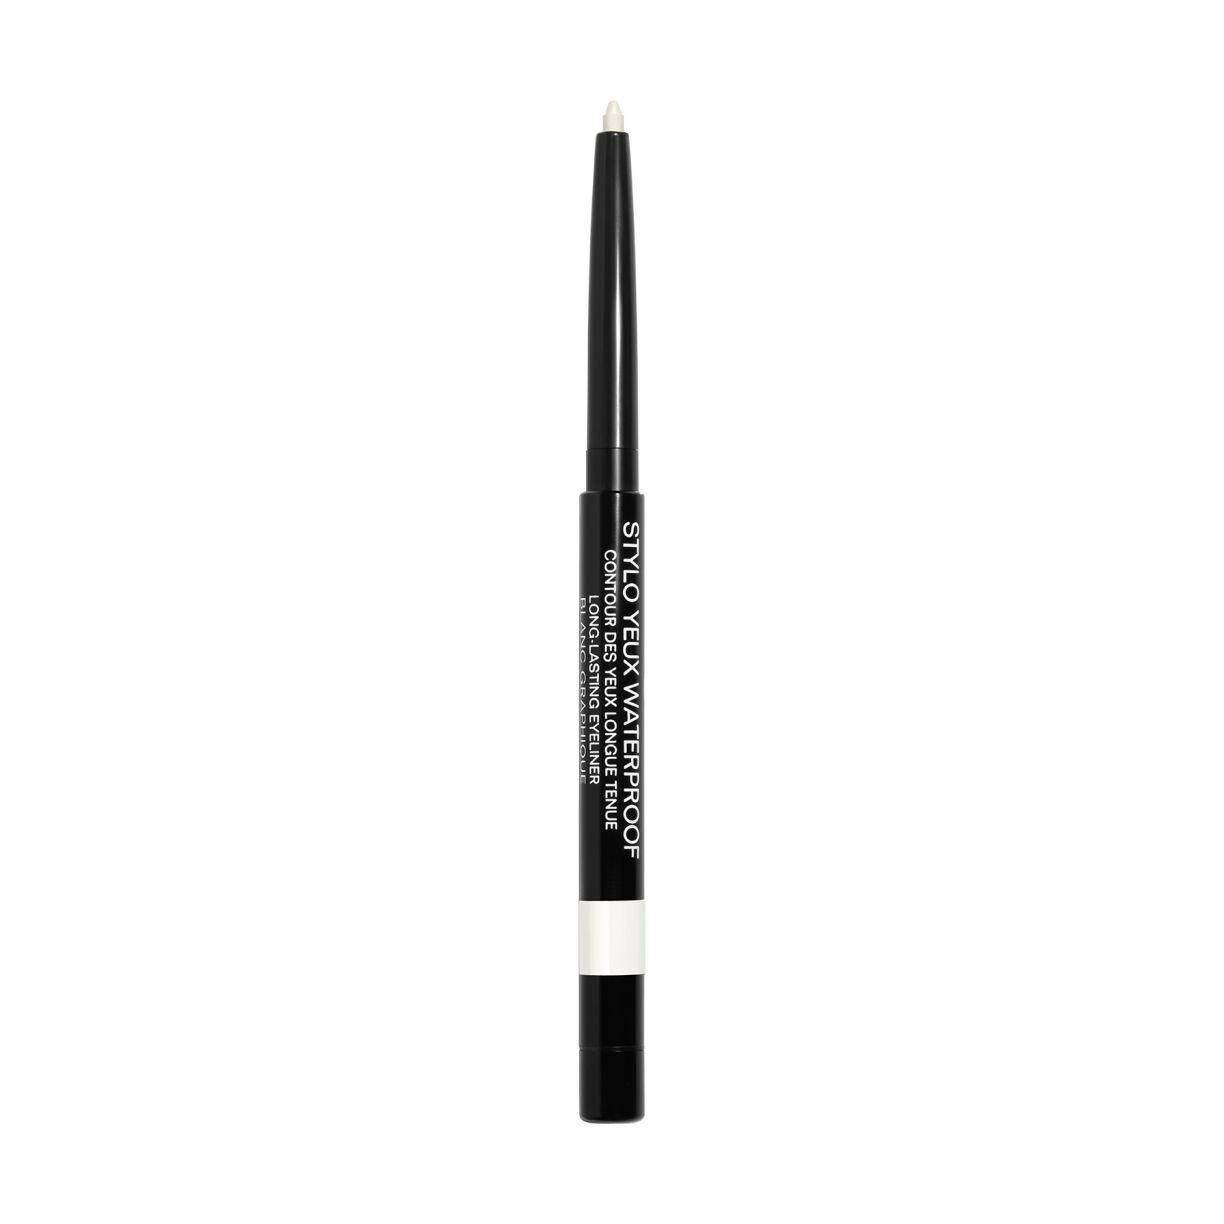 STYLO YEUX WATERPROOF WODOODPORNA KREDKA DO OCZU 949 - BLANC GRAPHIQUE